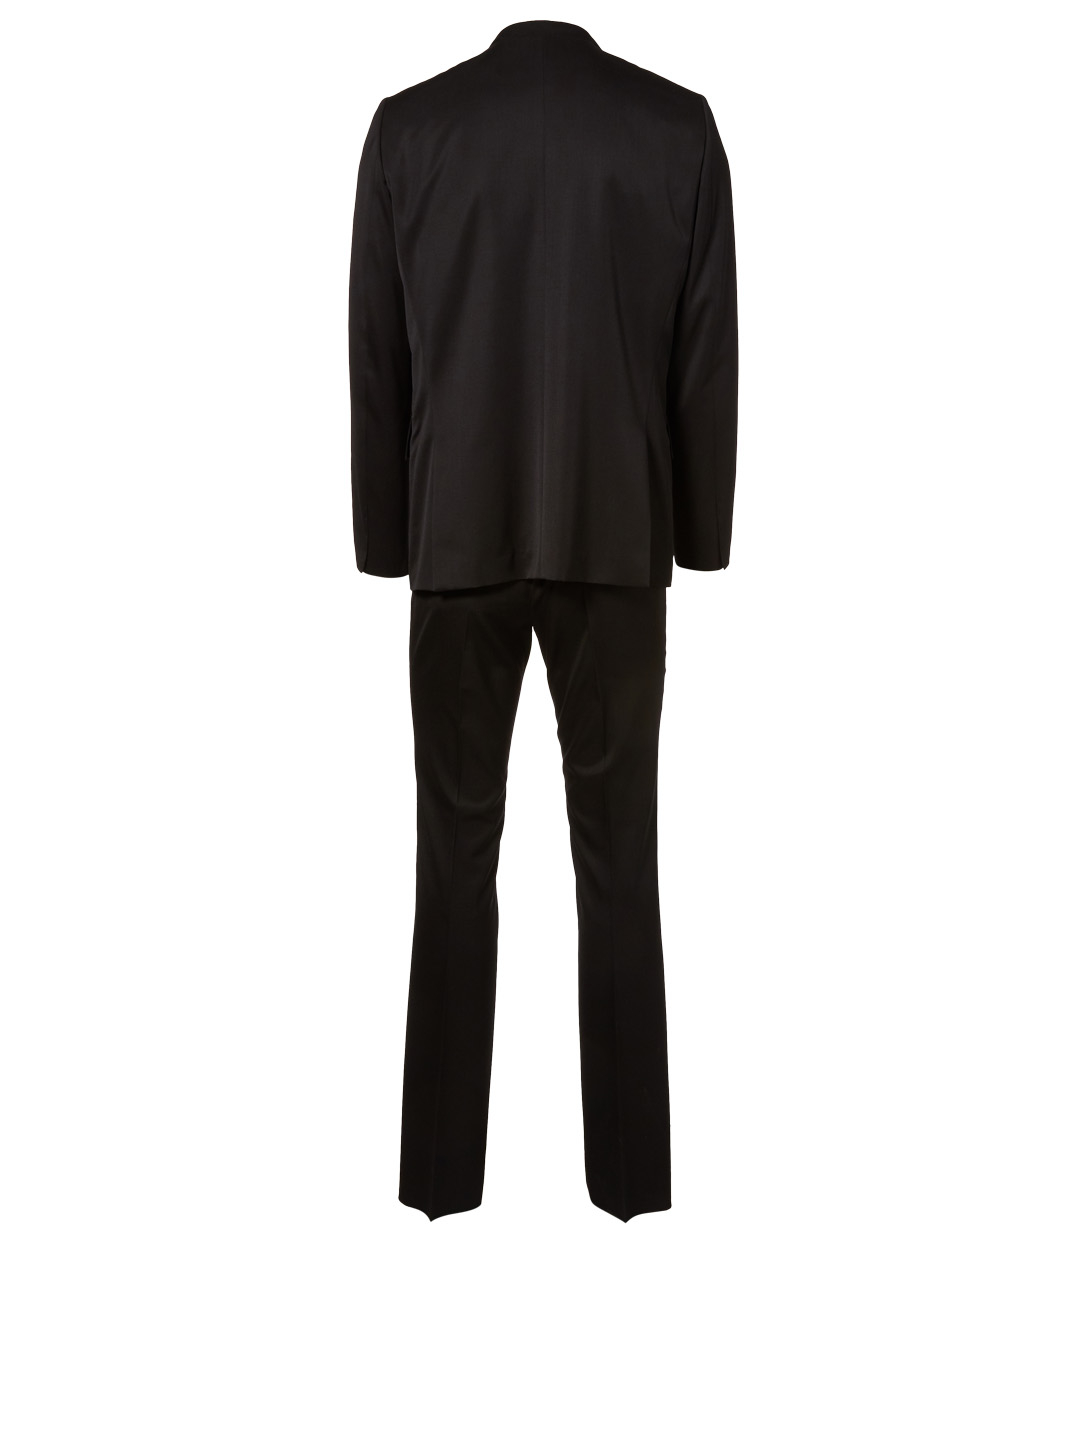 THE ROW David Twill Wool Suit Men's Black